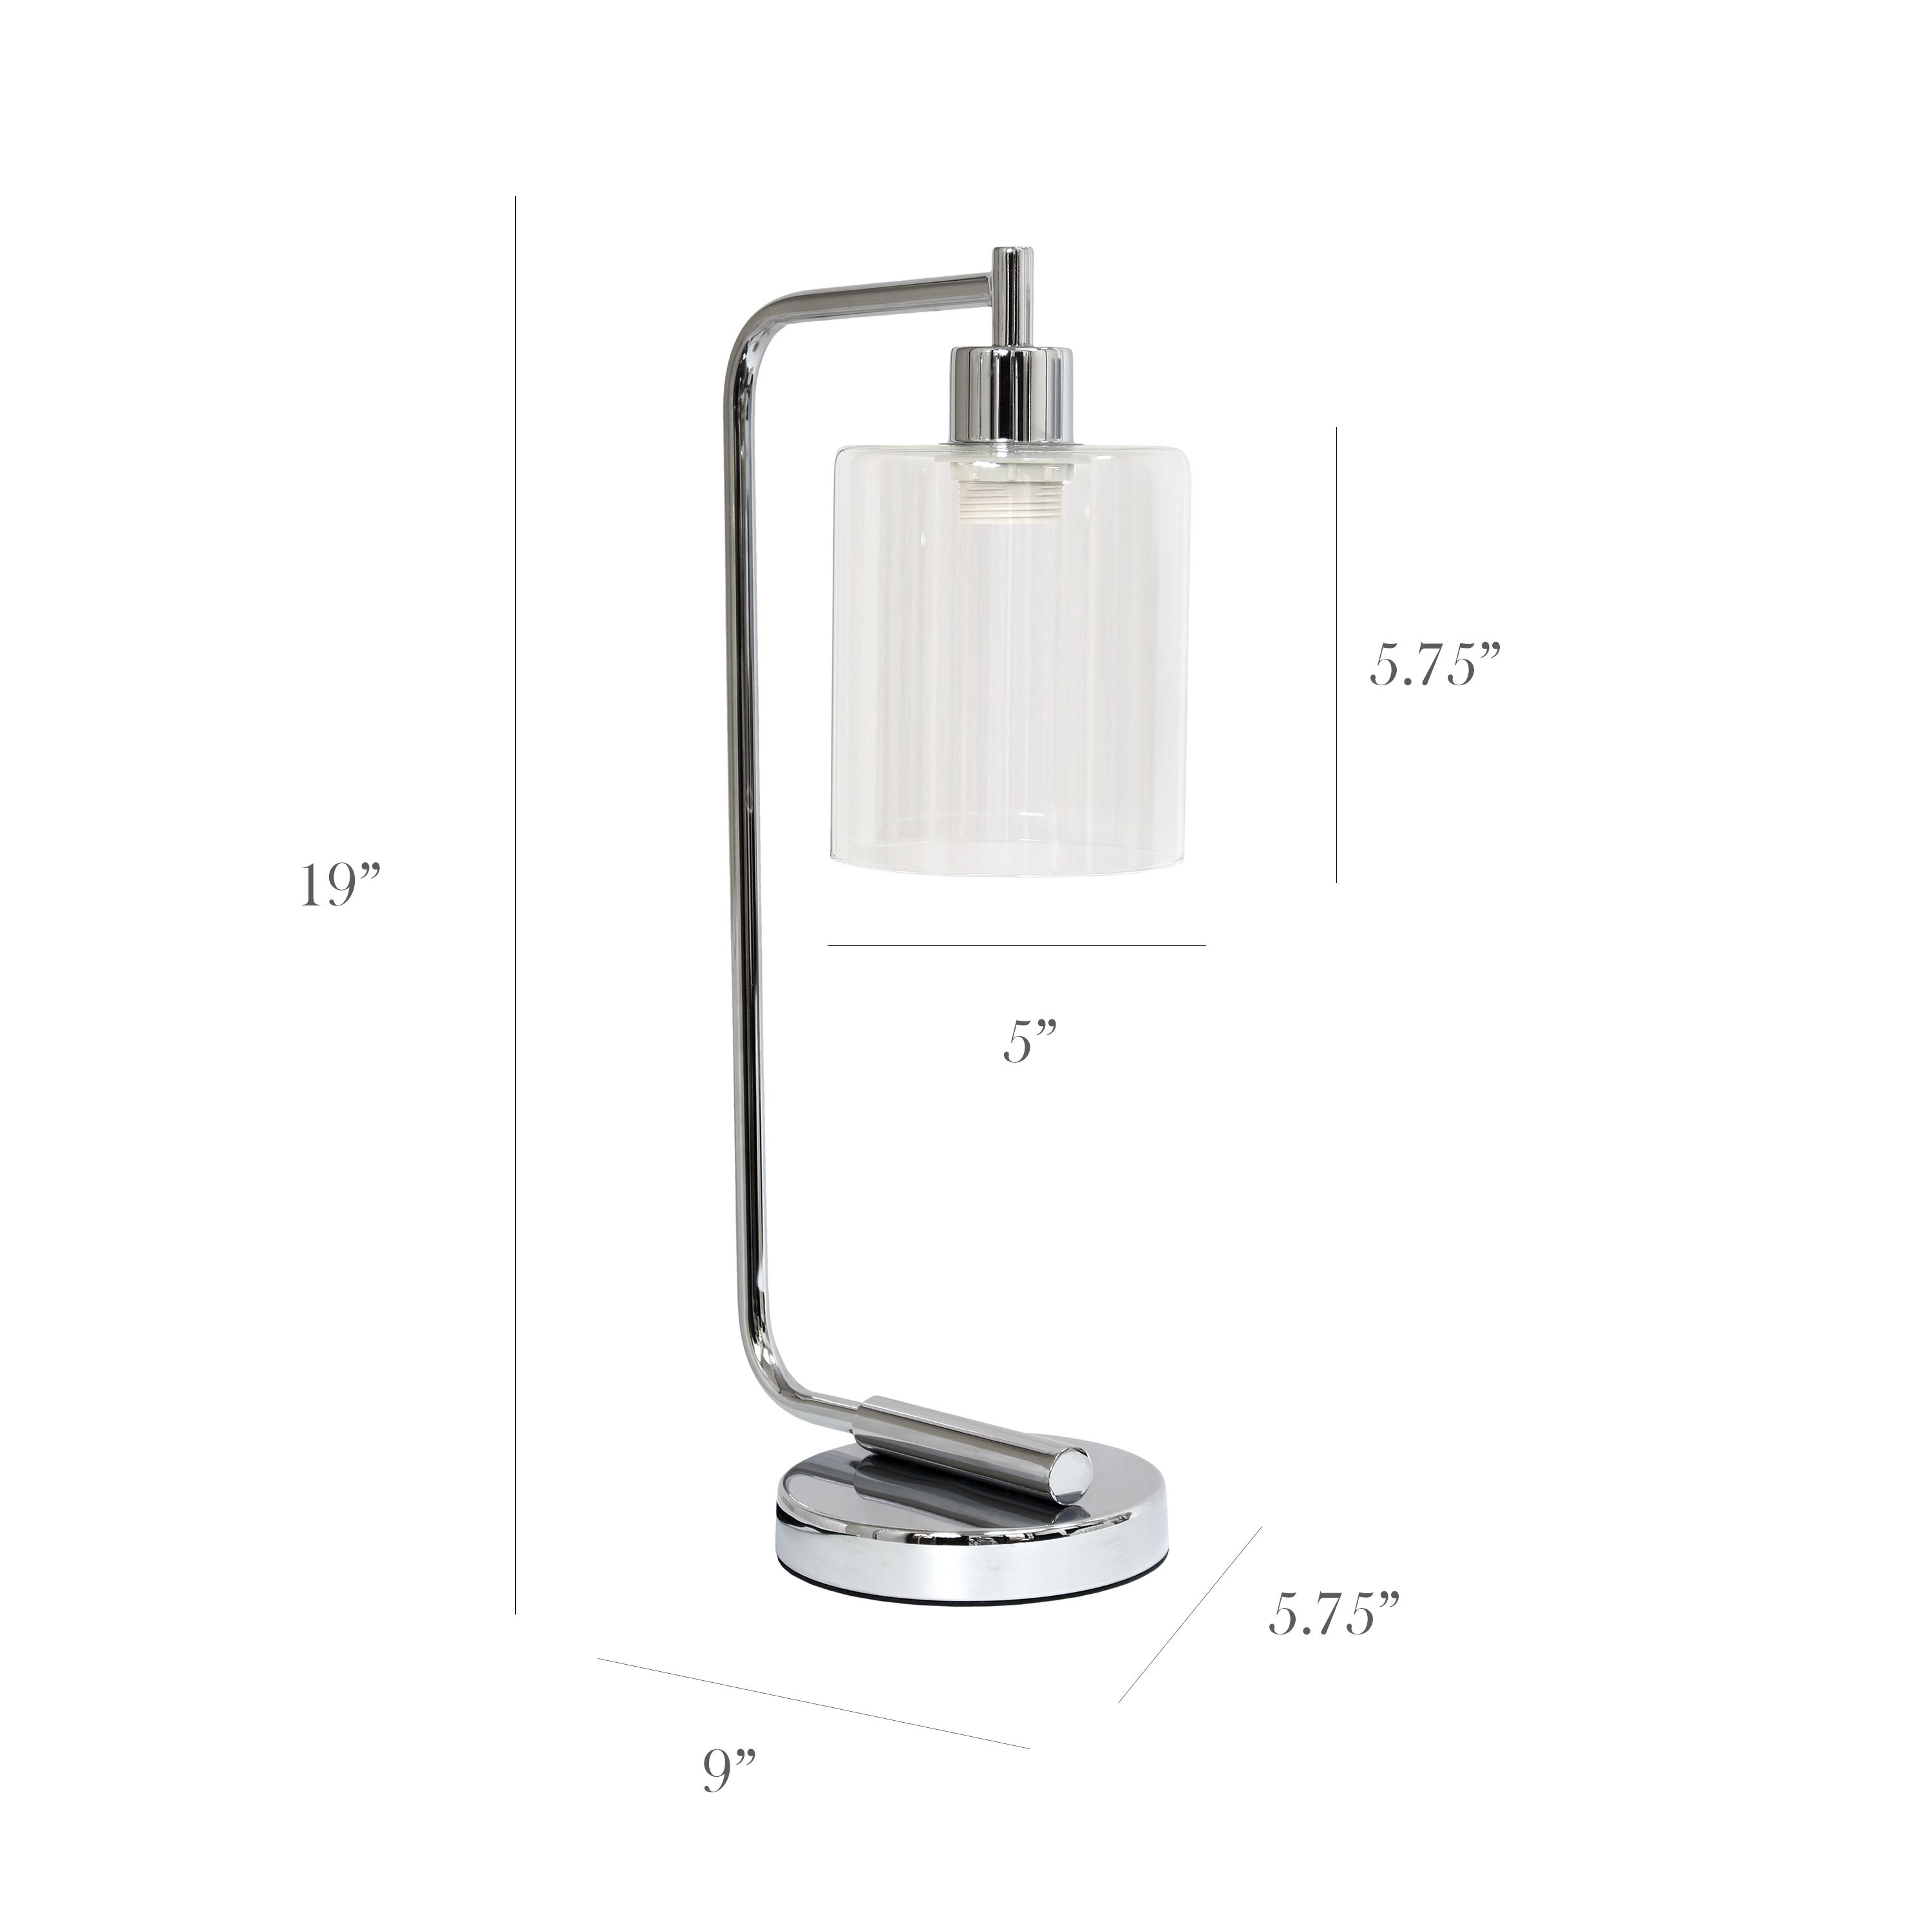 Simple Designs LD1036-CHR 18.75 in. Bronson Antique Style Industrial Iron Lantern Desk Lamp with Glass Shade Chrome